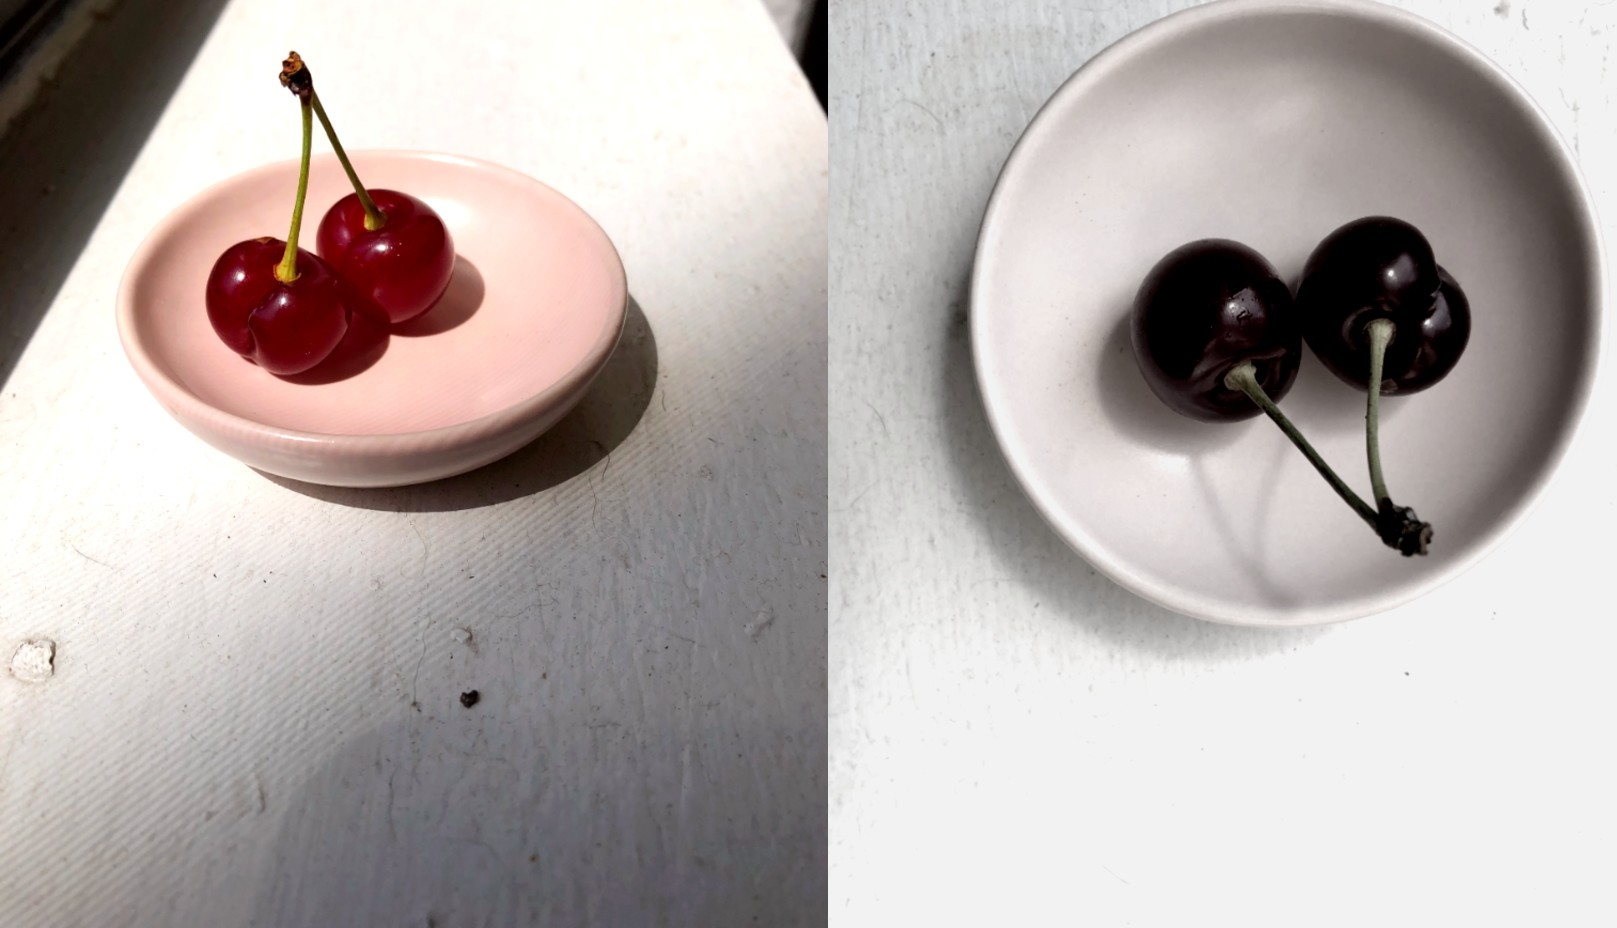 two images of cherries on a small plate: one in color and one desaturated